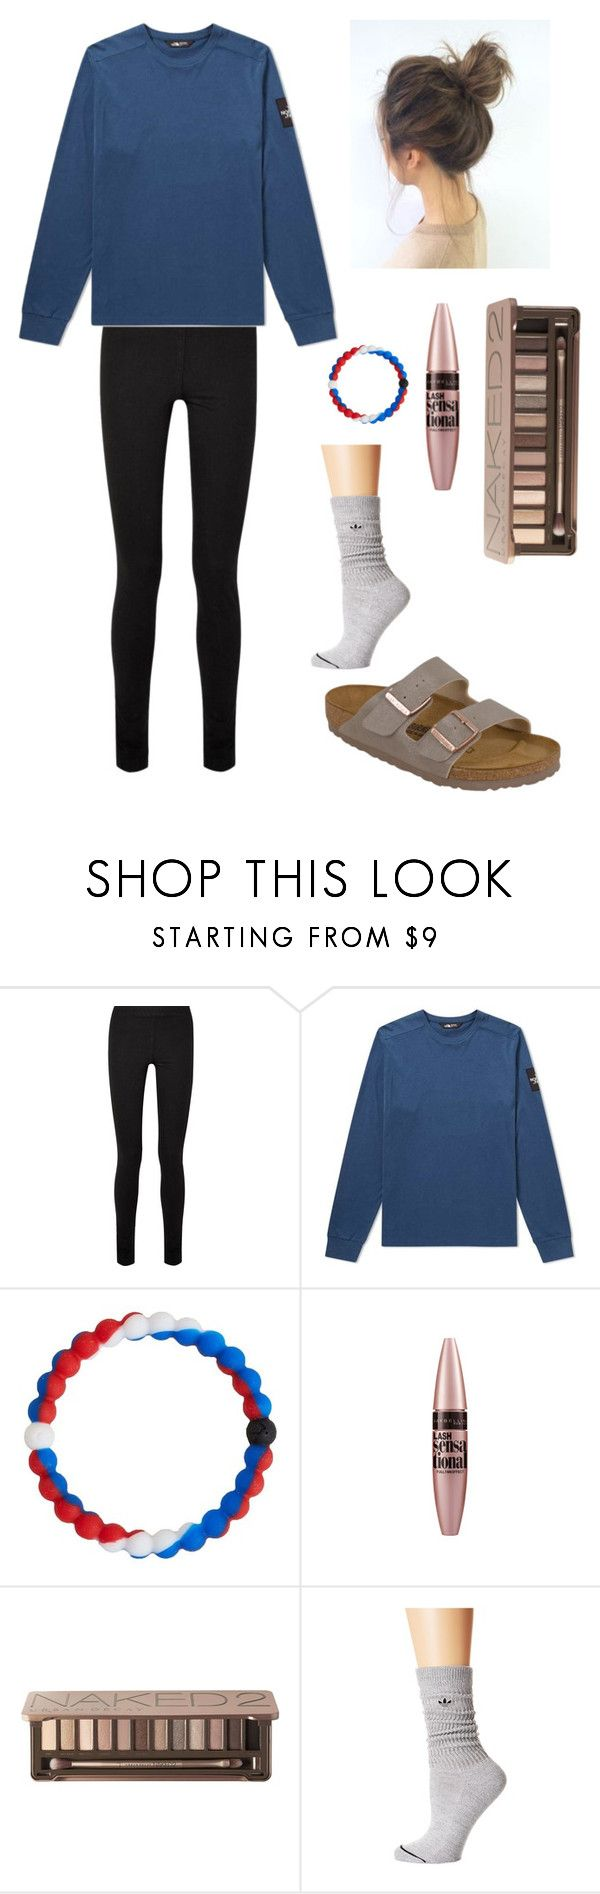 """""""Outfit with Birkenstocks"""" by lagr on Polyvore featuring The Row, The North Face, Lokai, Maybelline, Urban Decay, adidas Originals and Birkenstock"""